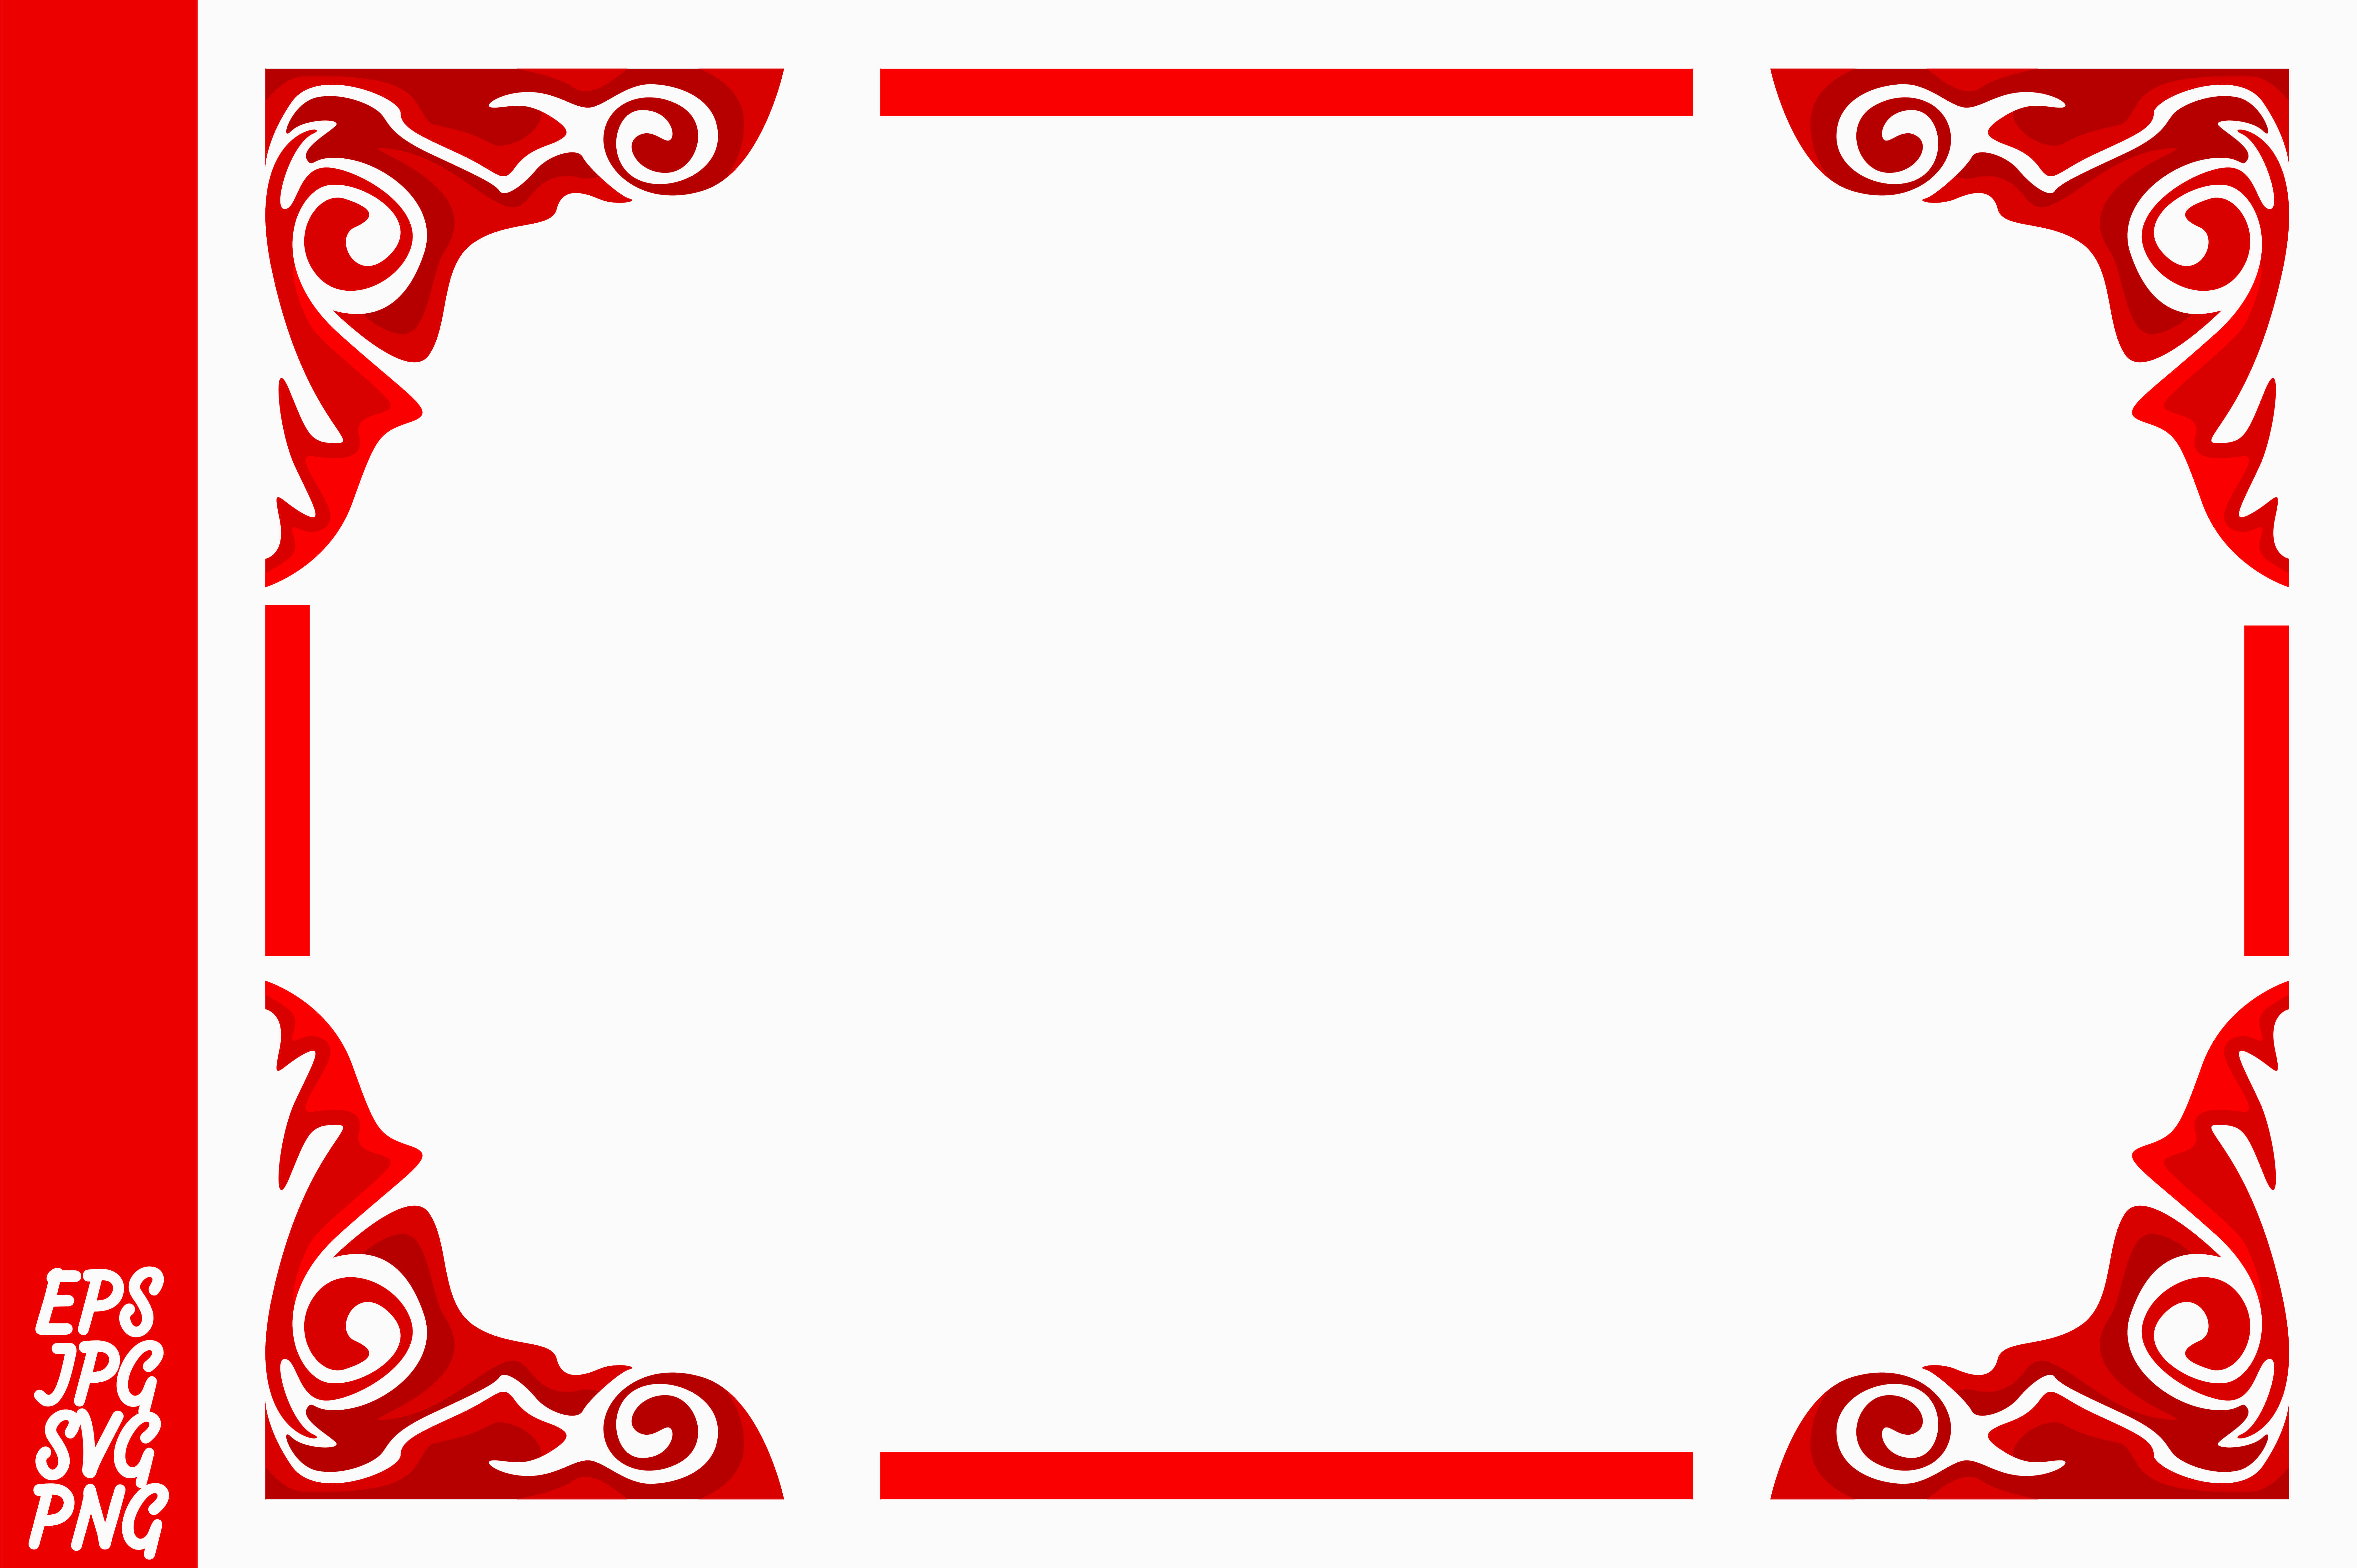 Download Free Red Ornament Border Vector Graphic By Arief Sapta Adjie for Cricut Explore, Silhouette and other cutting machines.